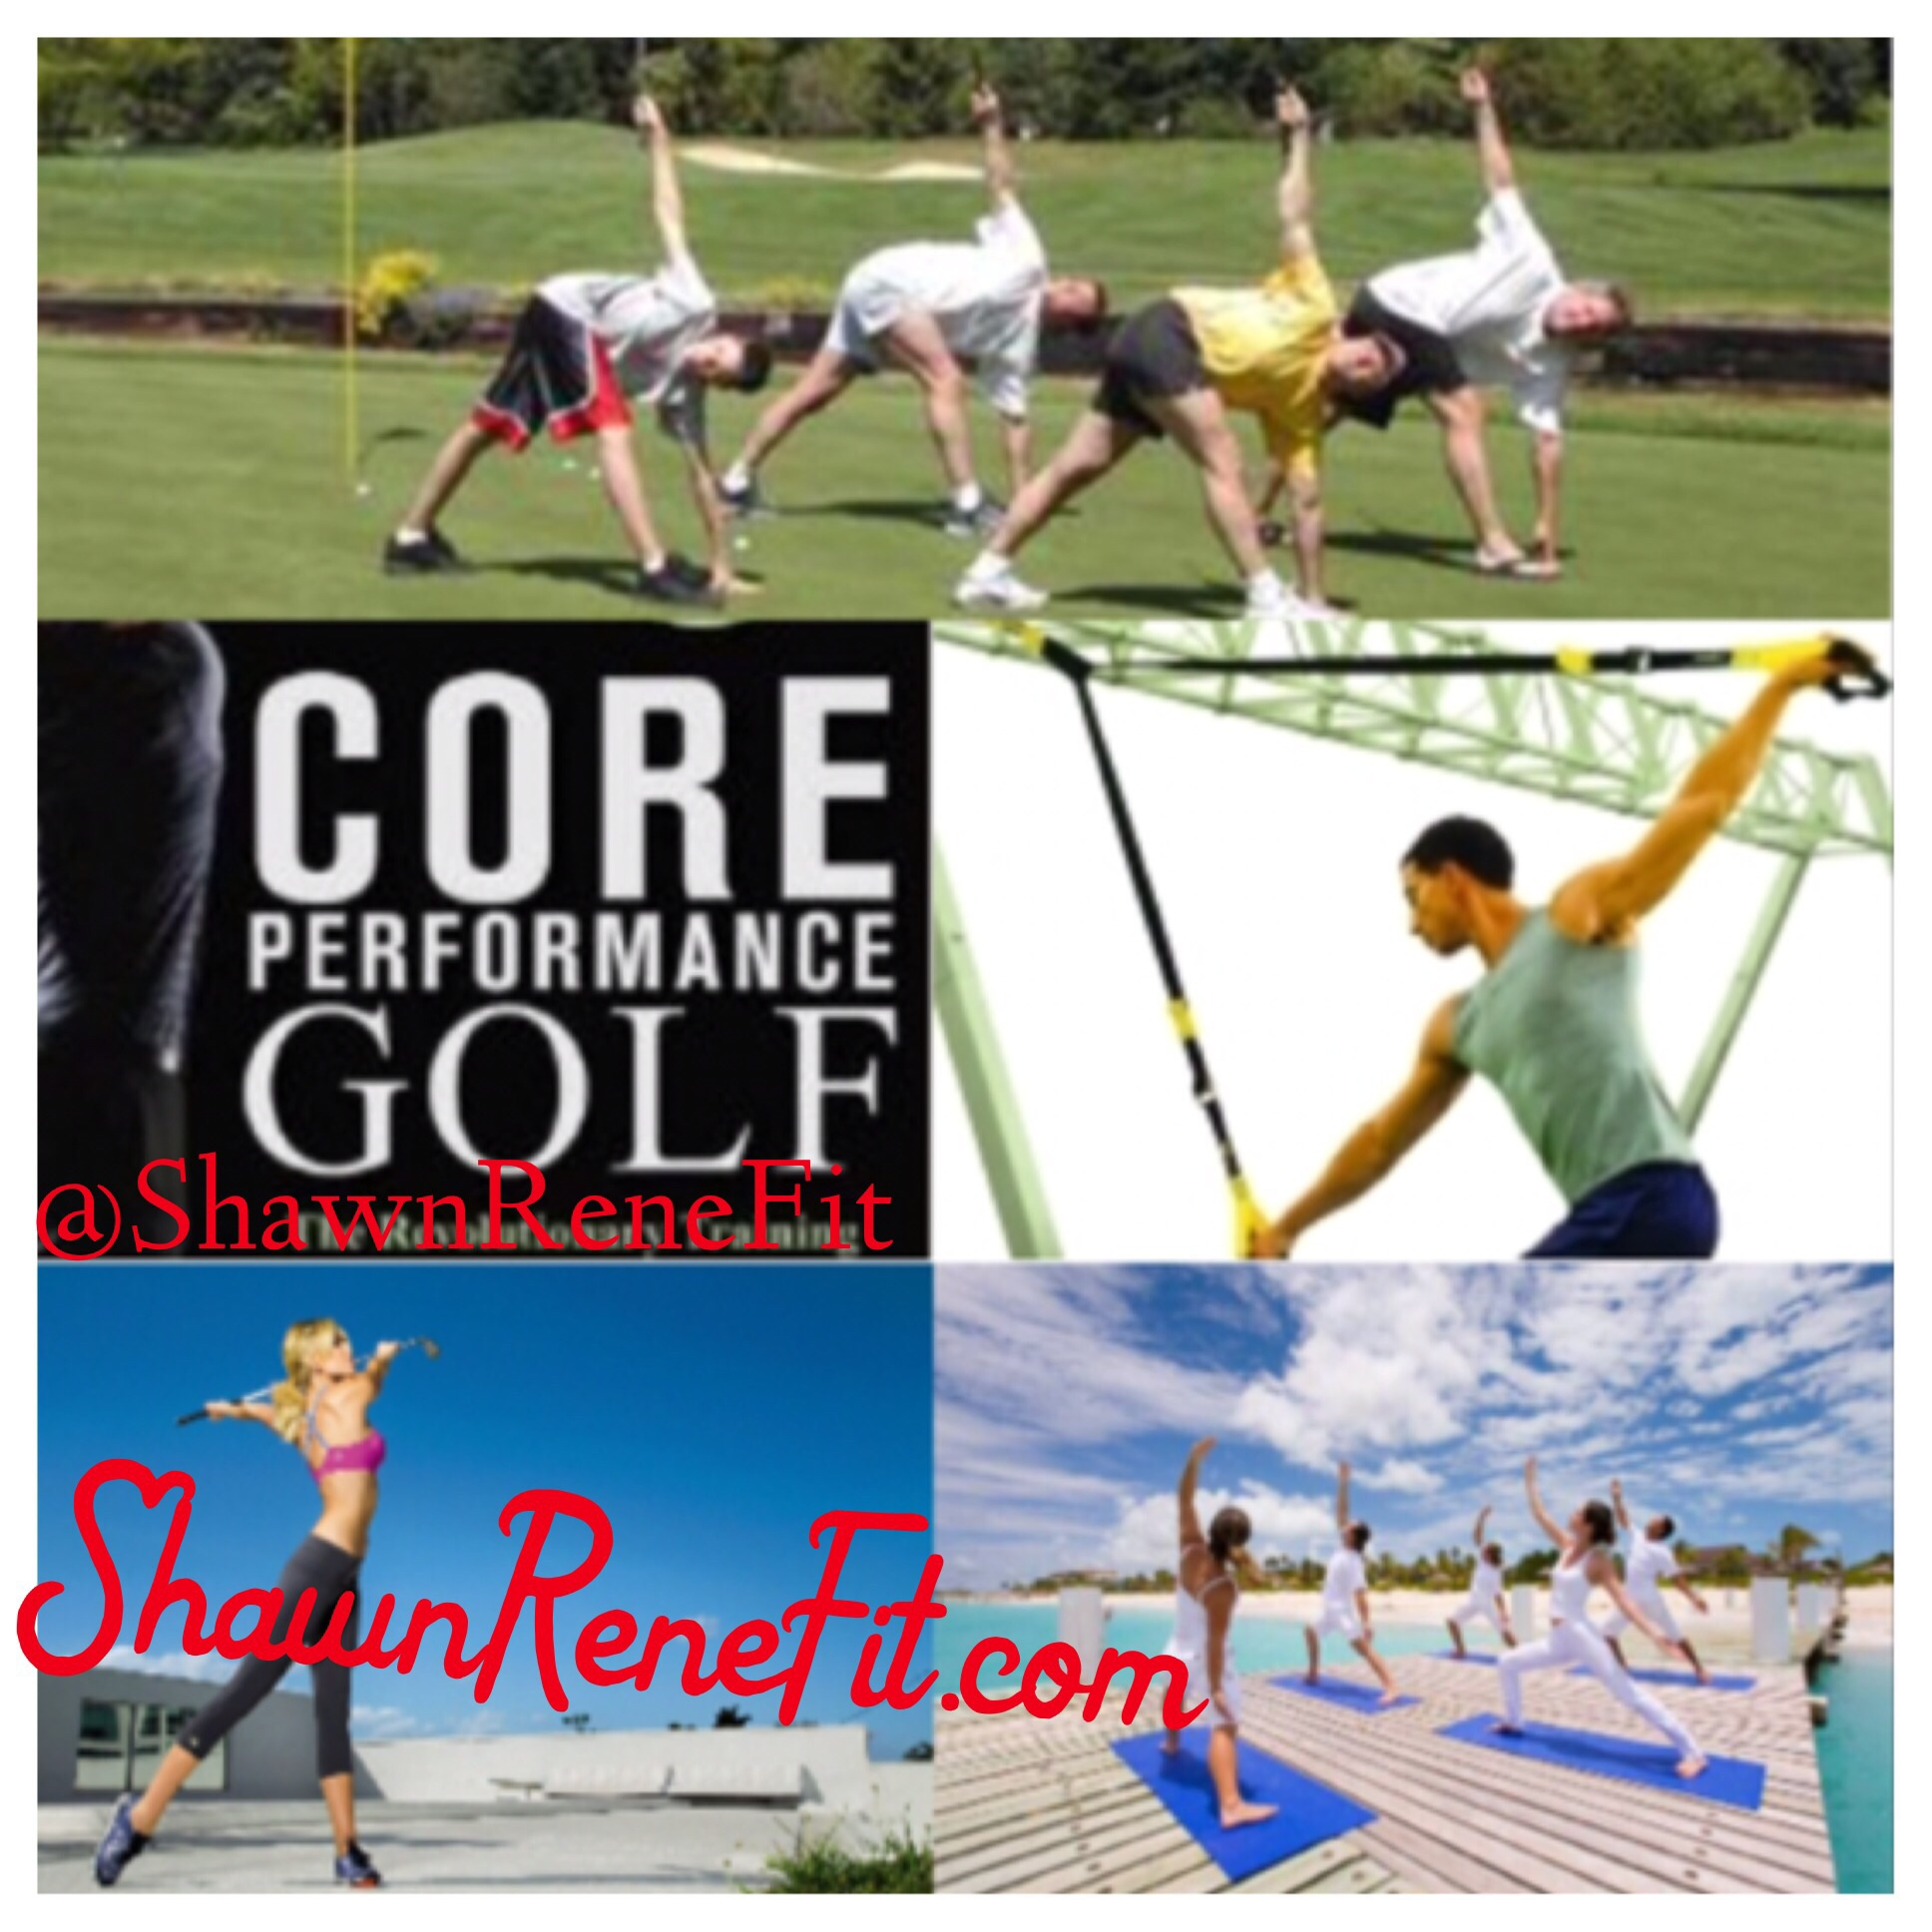 Shawn Rene Zimmerman golf workouts golf puma golf exercises core flexibility sports illustrated golf digest